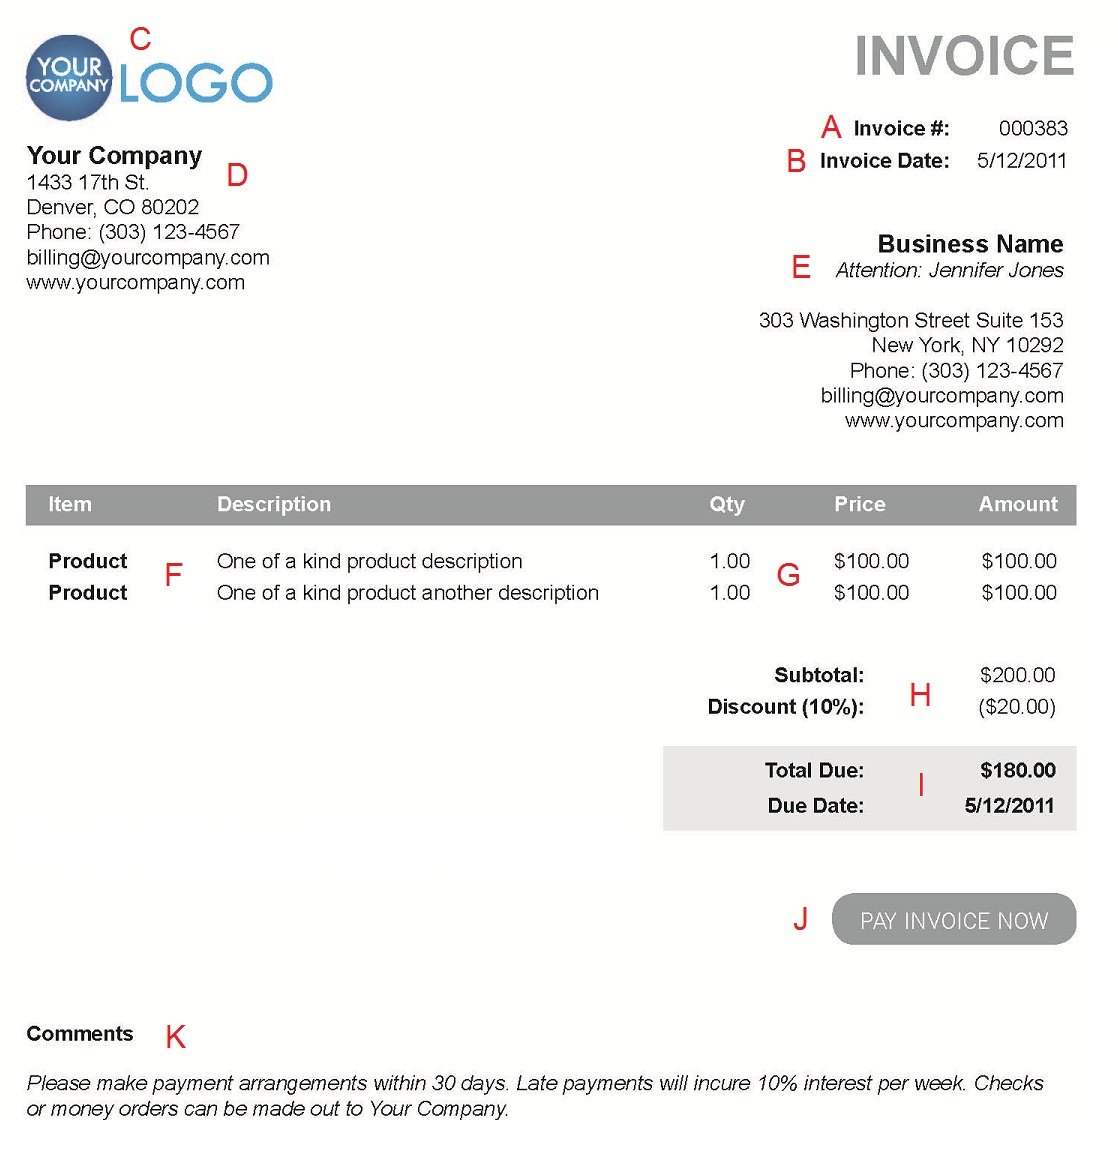 Centralasianshepherdus  Picturesque The  Different Sections Of An Electronic Payment Invoice With Lovable A  With Amazing Proforma Receipt Template Also Sample Sales Receipt Template In Addition Pork Receipt And Business Receipt Book As Well As This Is To Acknowledge The Receipt Of Your Email Additionally Charity Receipts For Taxes From Paysimplecom With Centralasianshepherdus  Lovable The  Different Sections Of An Electronic Payment Invoice With Amazing A  And Picturesque Proforma Receipt Template Also Sample Sales Receipt Template In Addition Pork Receipt From Paysimplecom